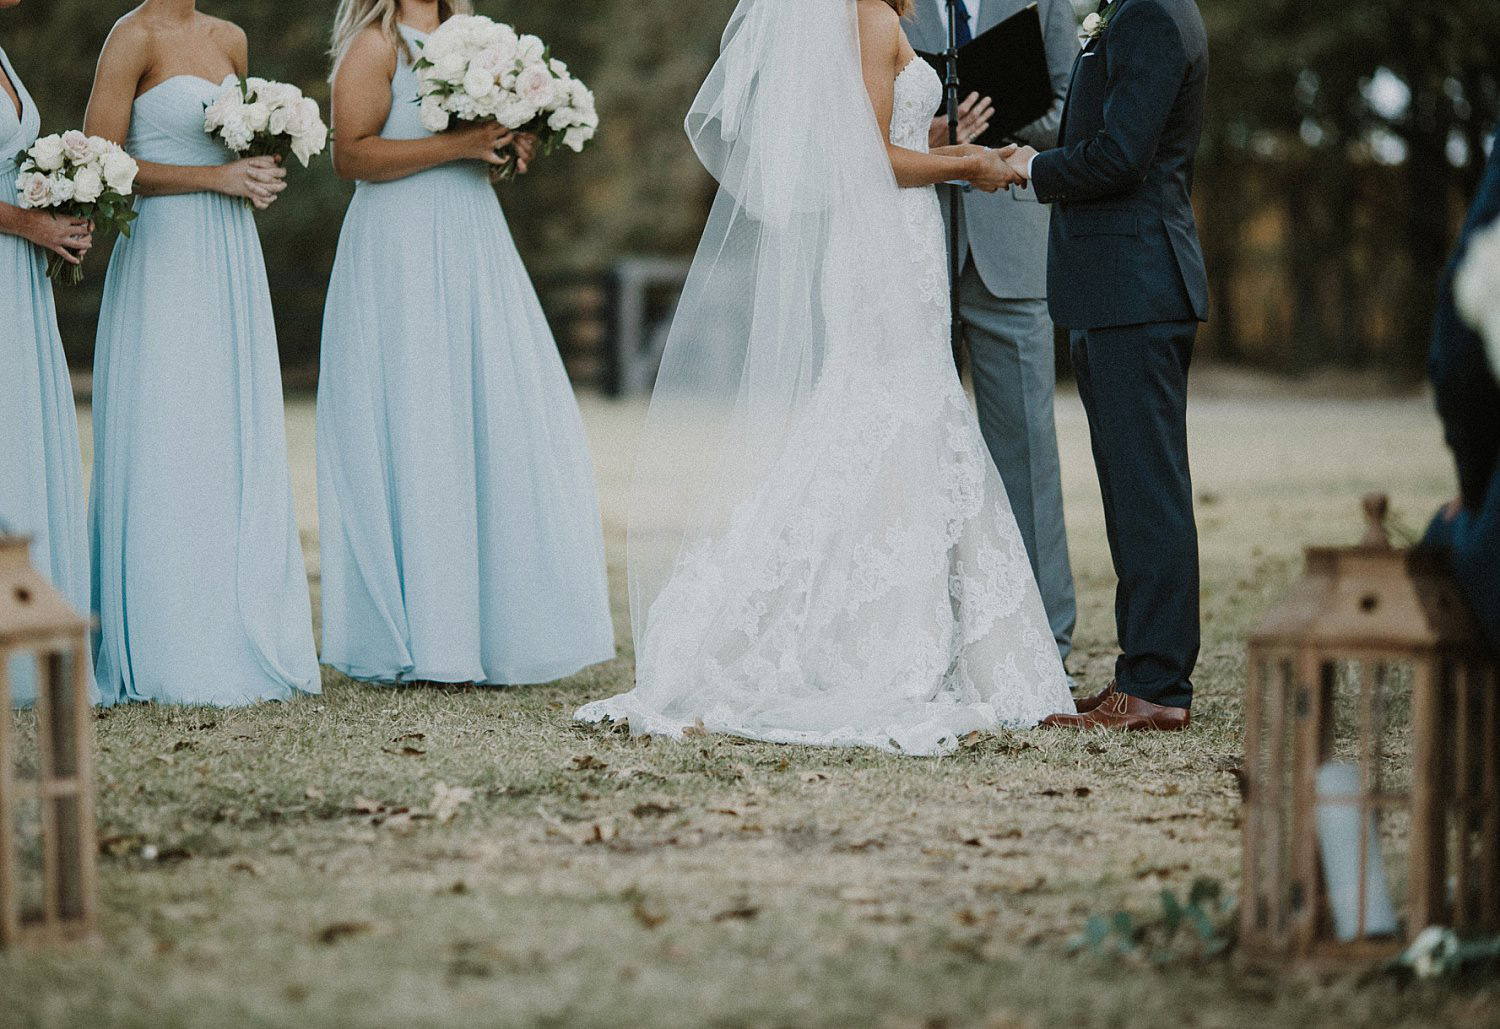 Bridesmaids in long bridesmaid dresses holding white flowers at outdoor ceremony